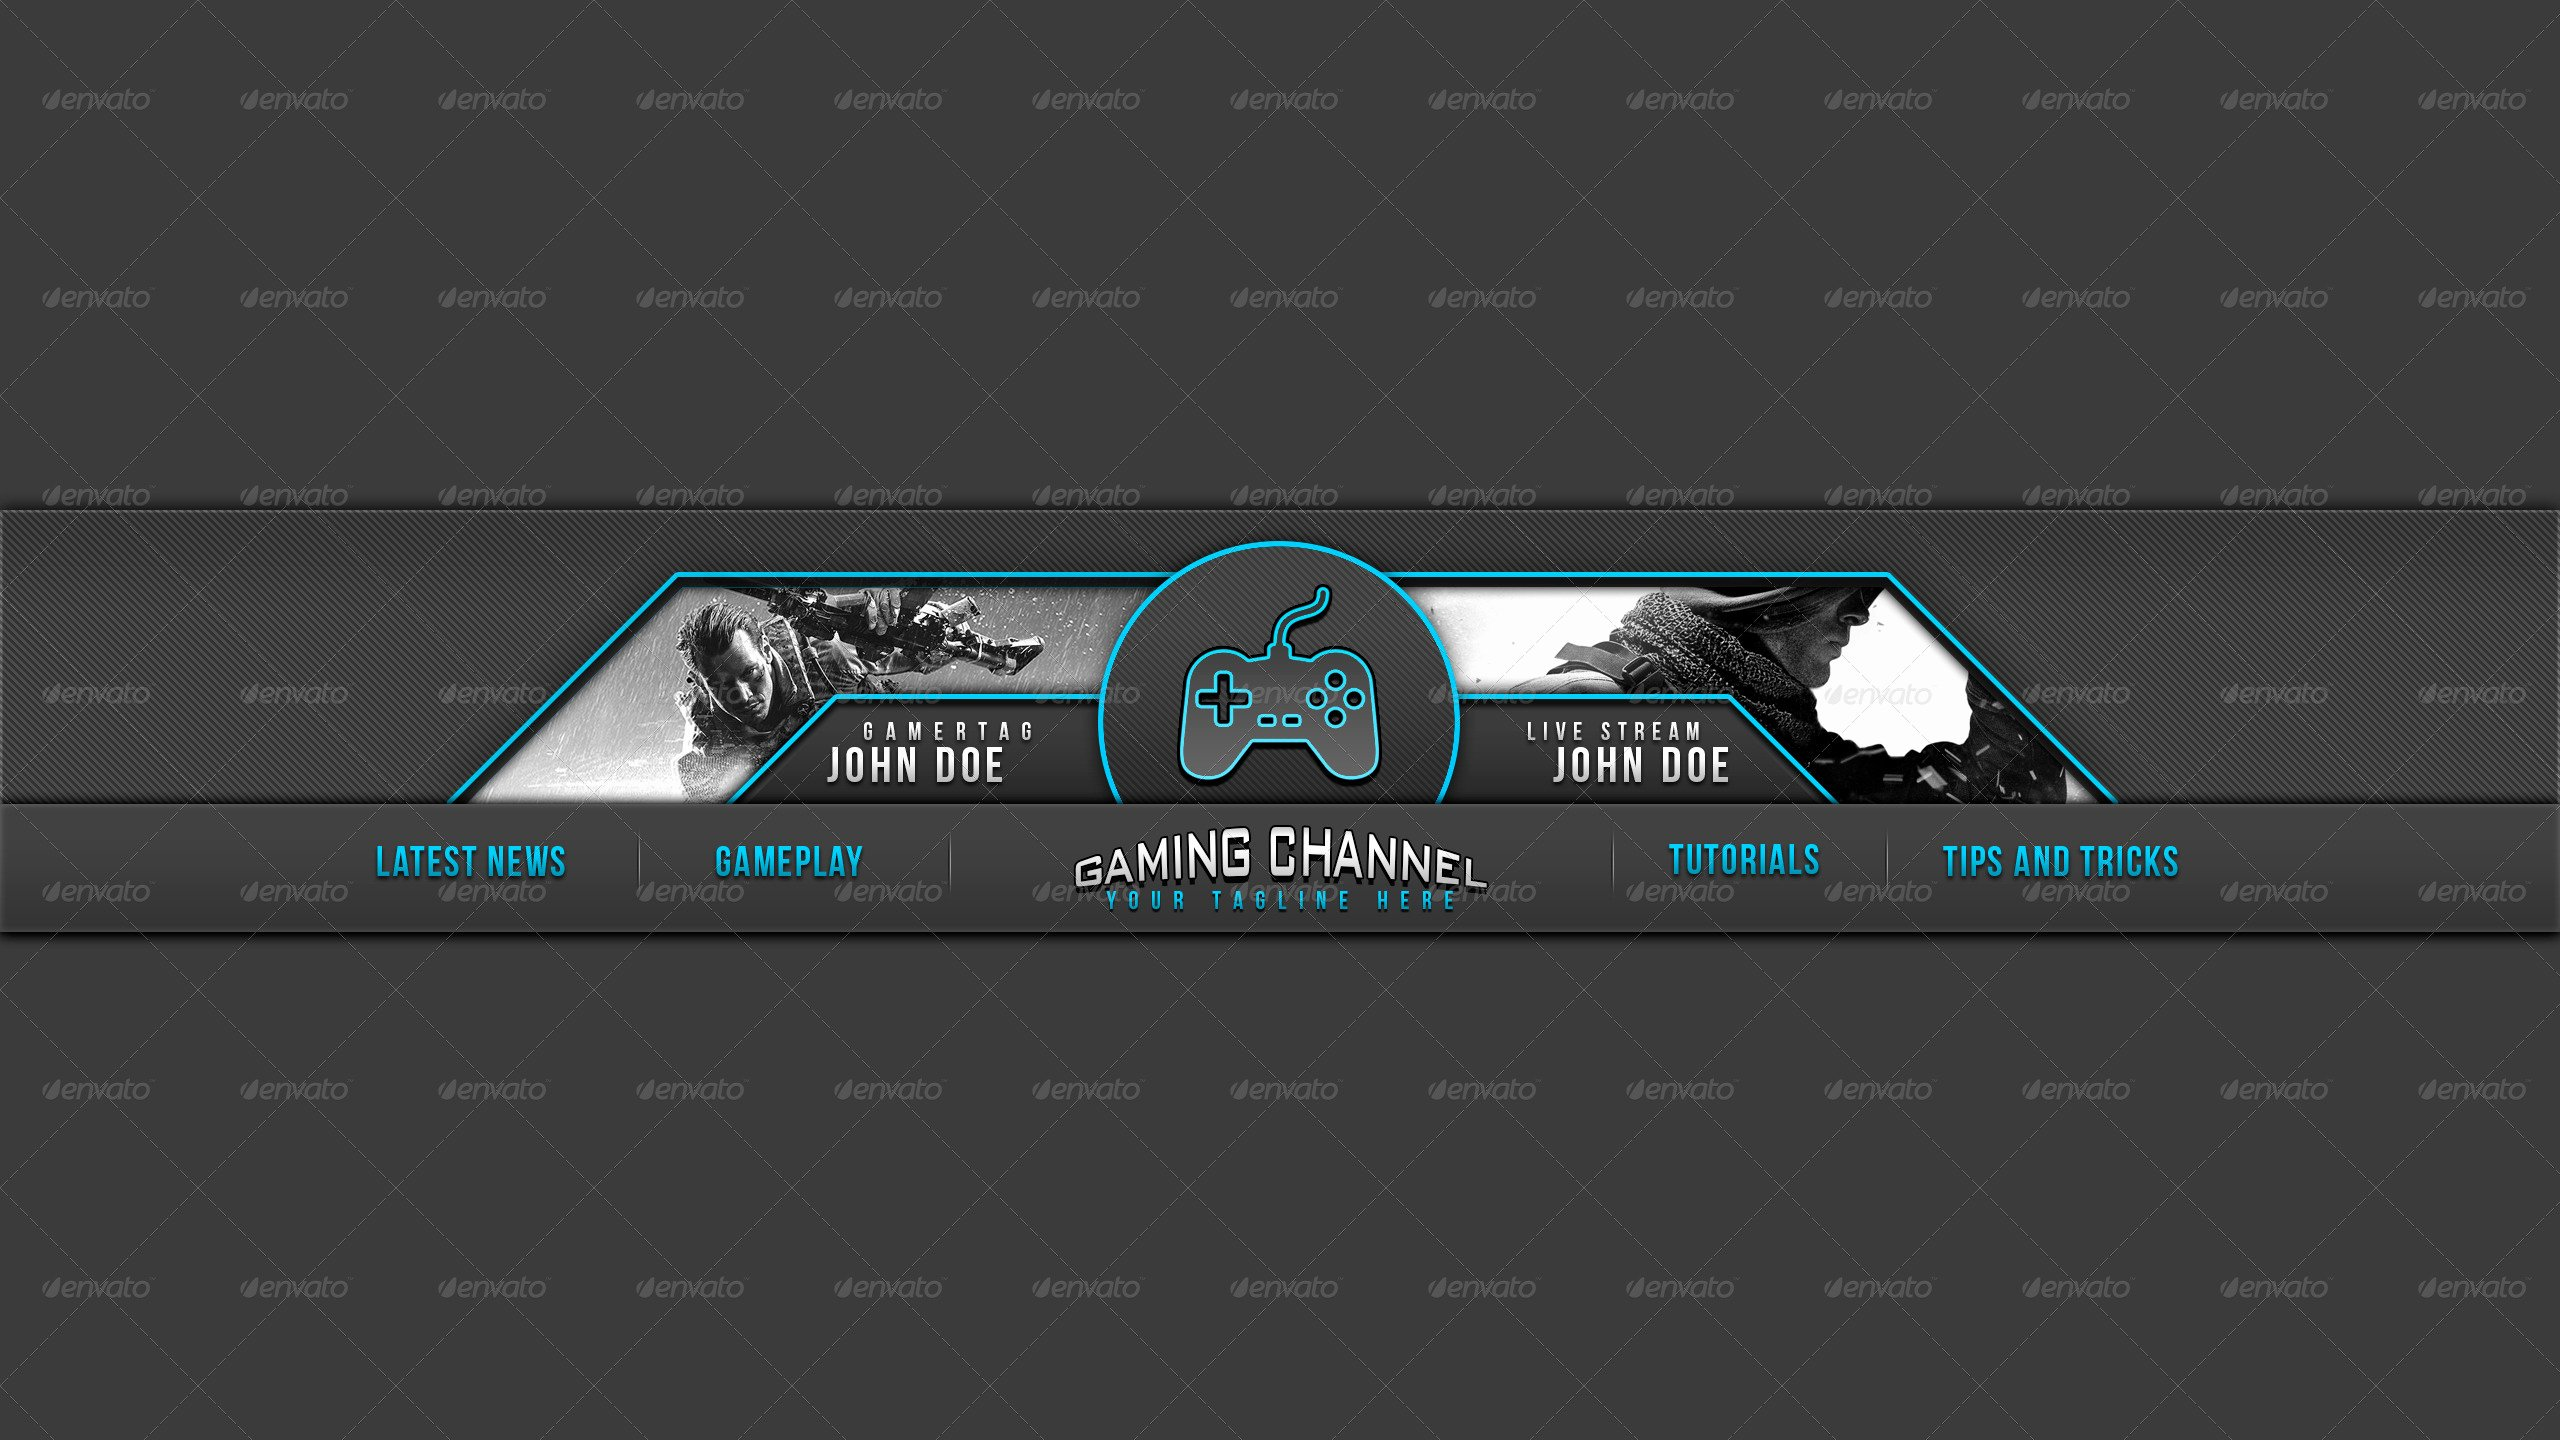 Youtube Banner Template Gaming New 31 Premium & Free Psd Youtube Channel Banners for the Best